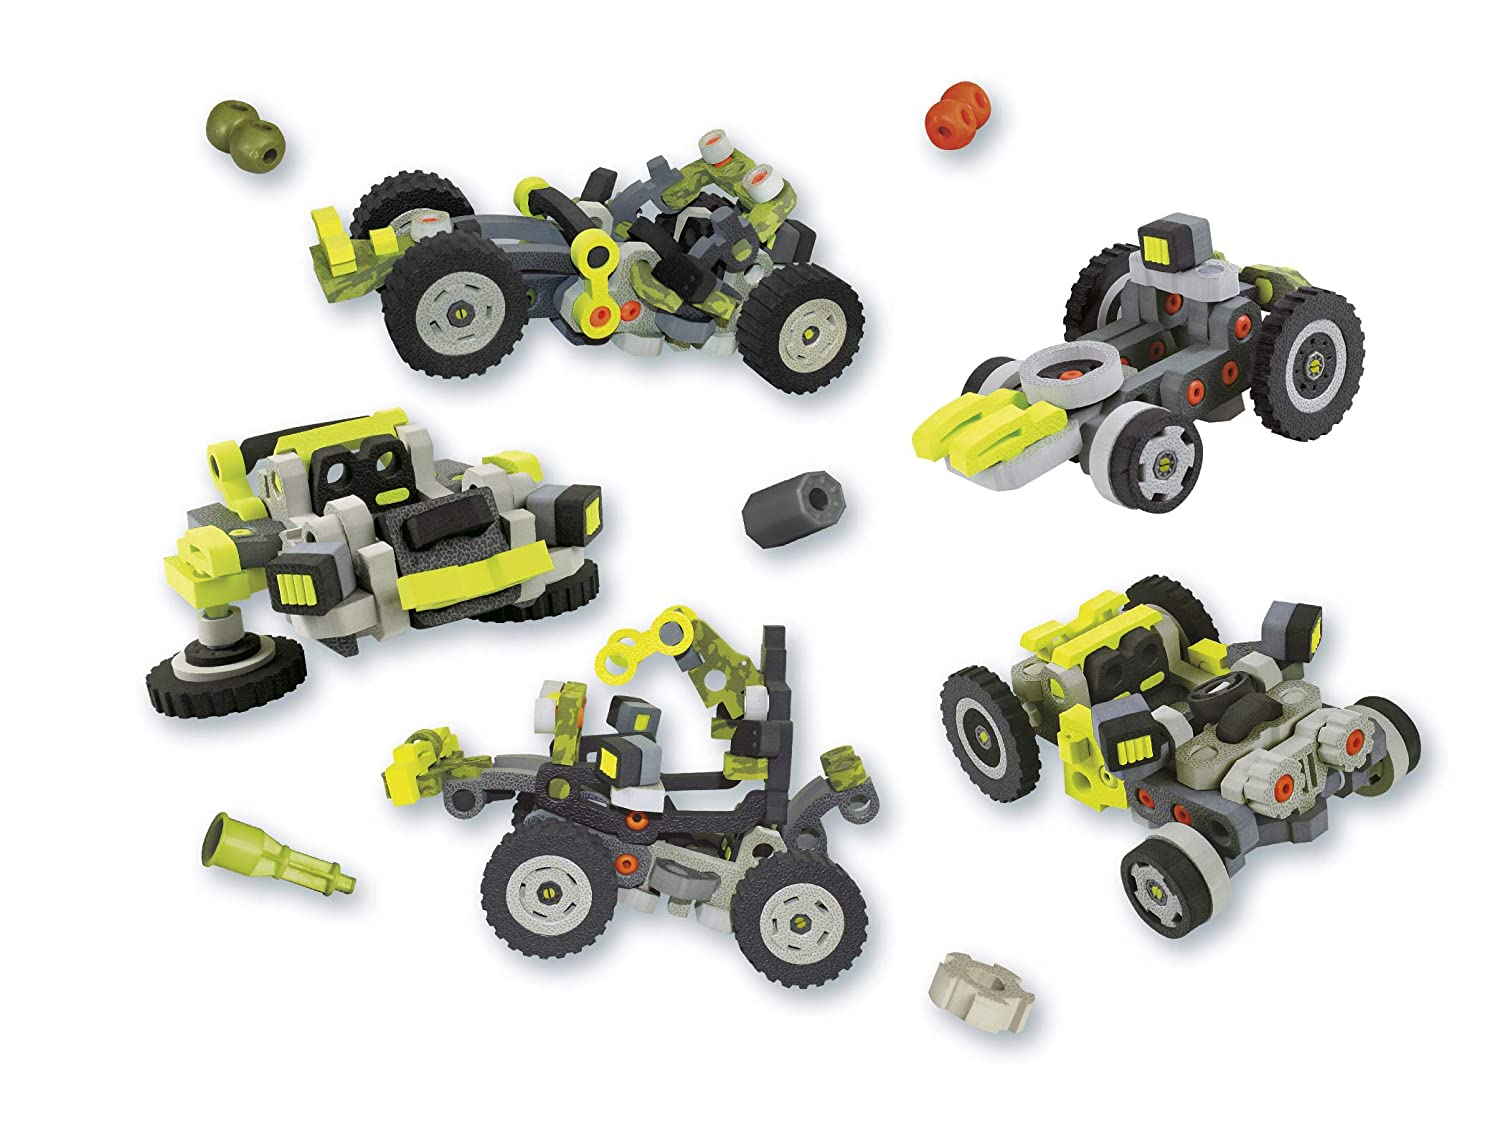 Amazon.com: Bloco Toys 3 in 1 Wild Wheeler | STEM Toy | Jeep, Dune Buggy, ATV 4 Wheeler | DIY Building Construction Set (242 Pieces): Toys & Games